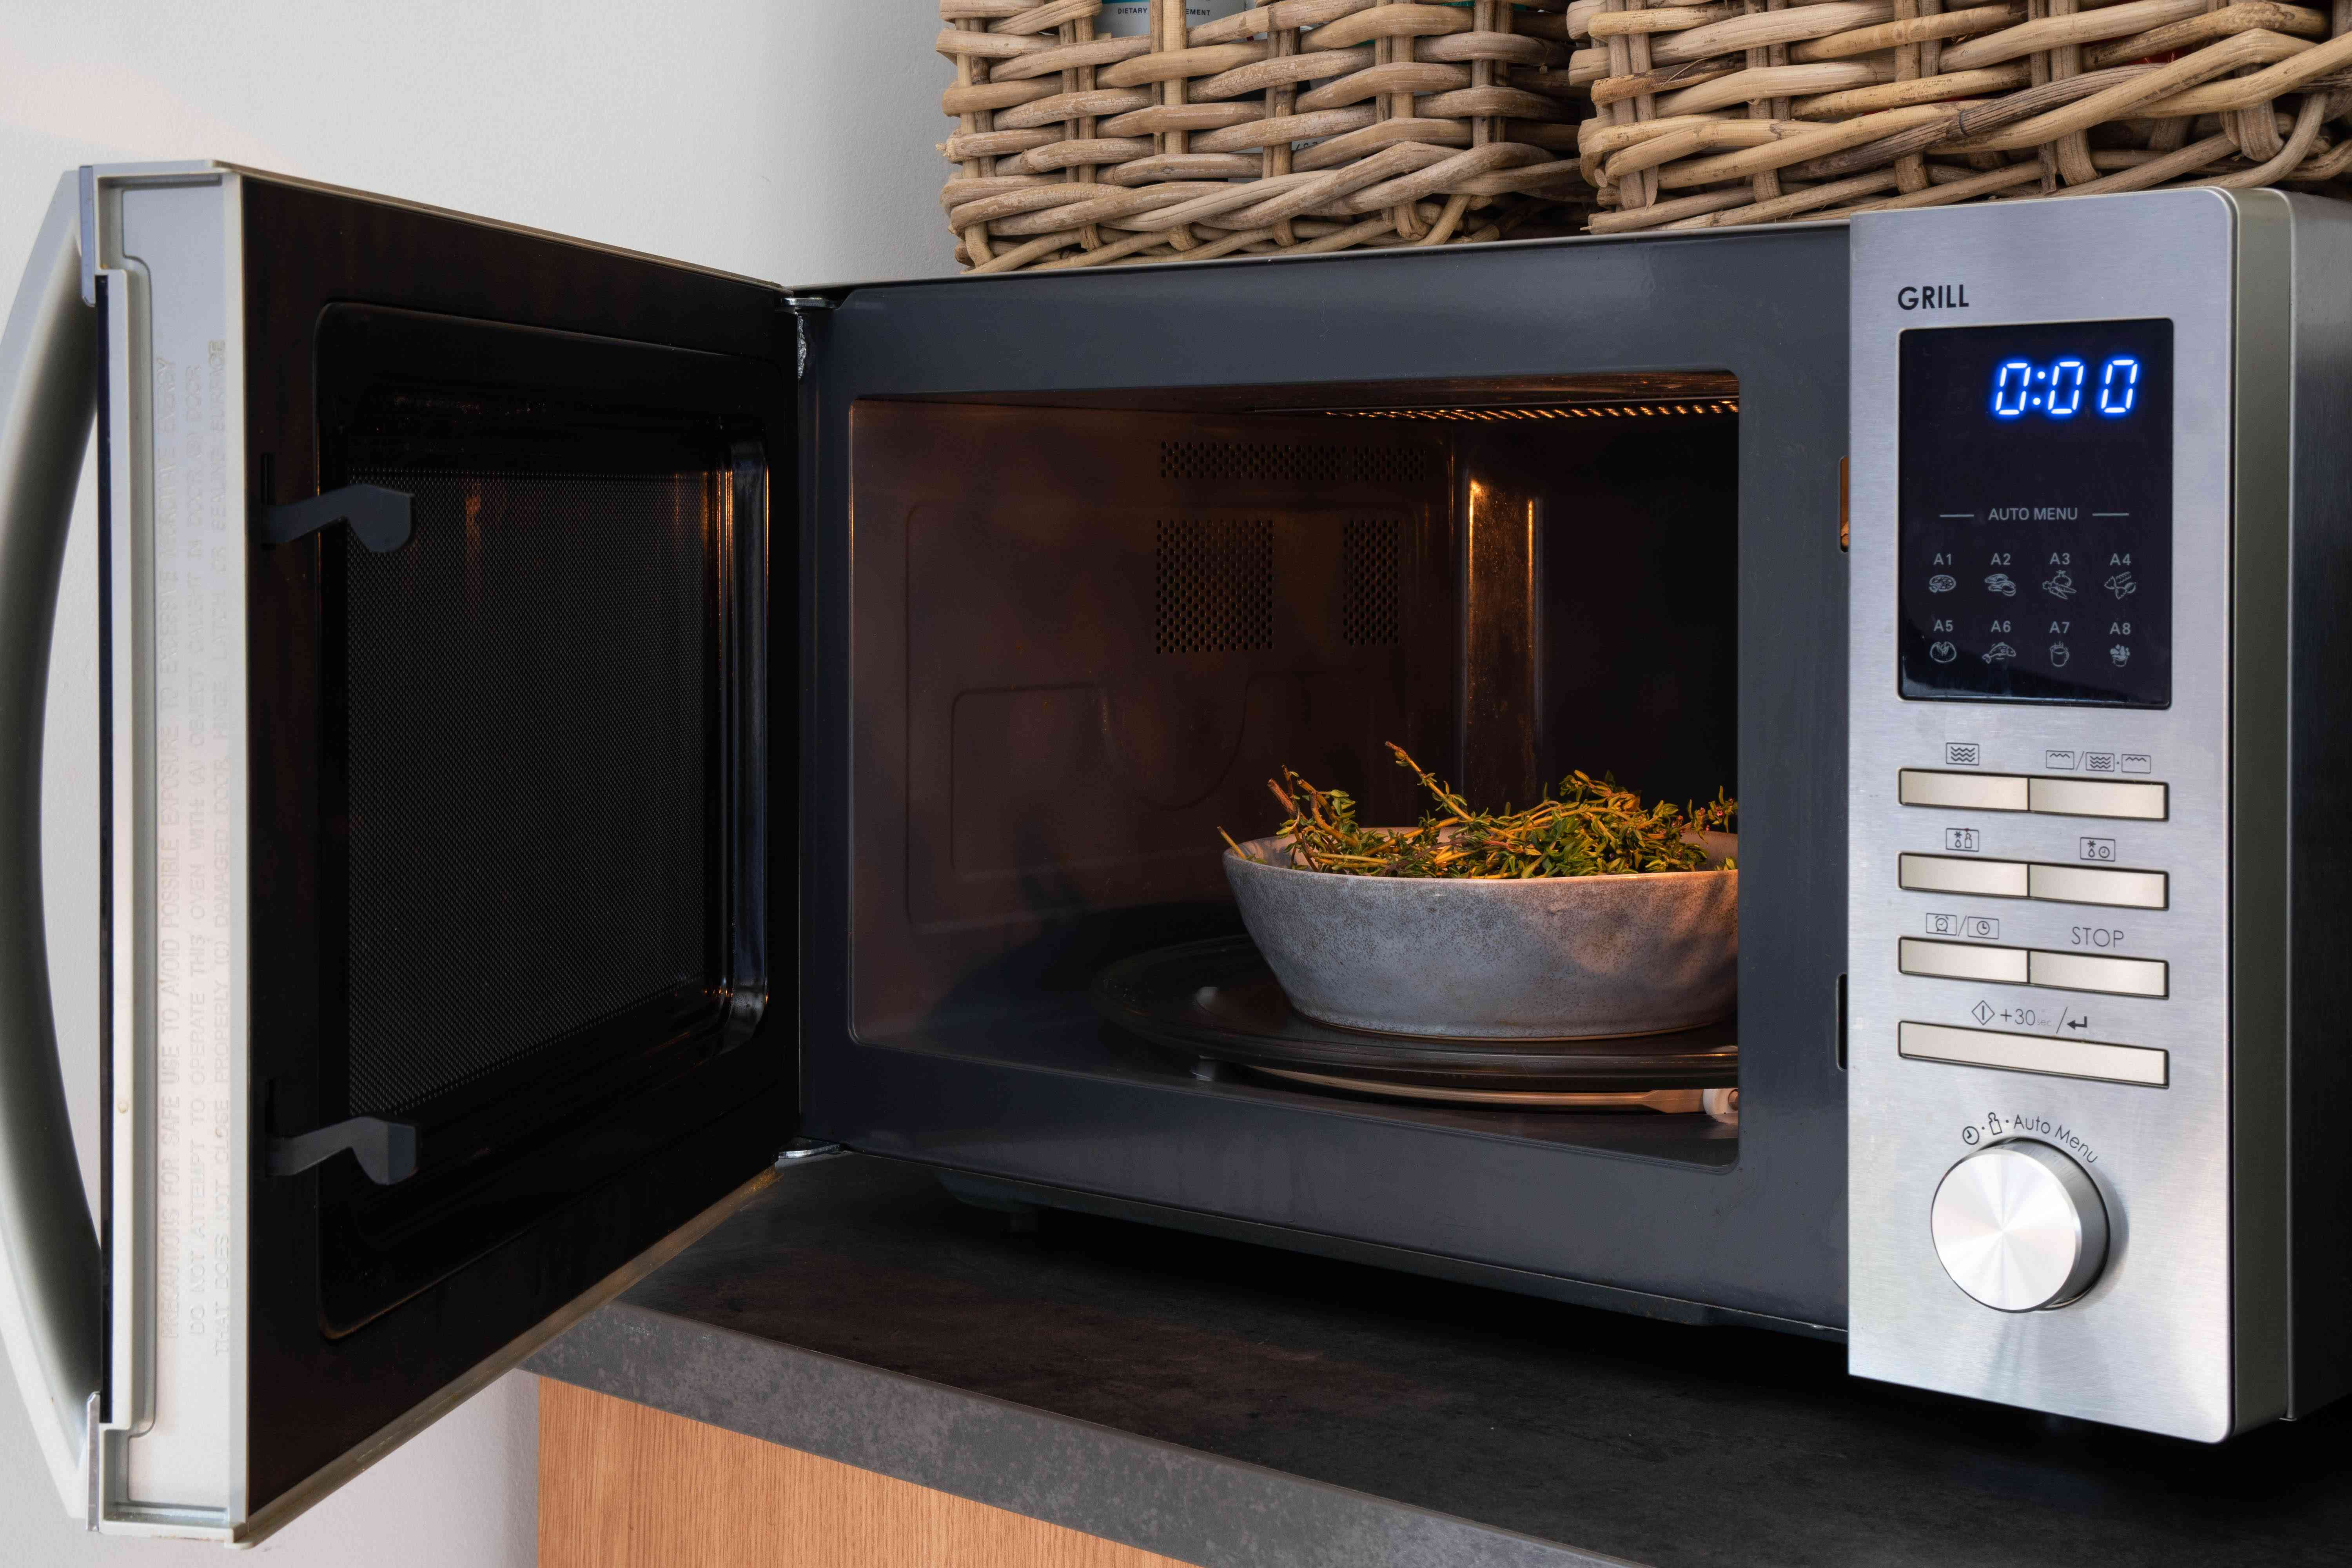 herbs being dried in a microwave with the door ajar